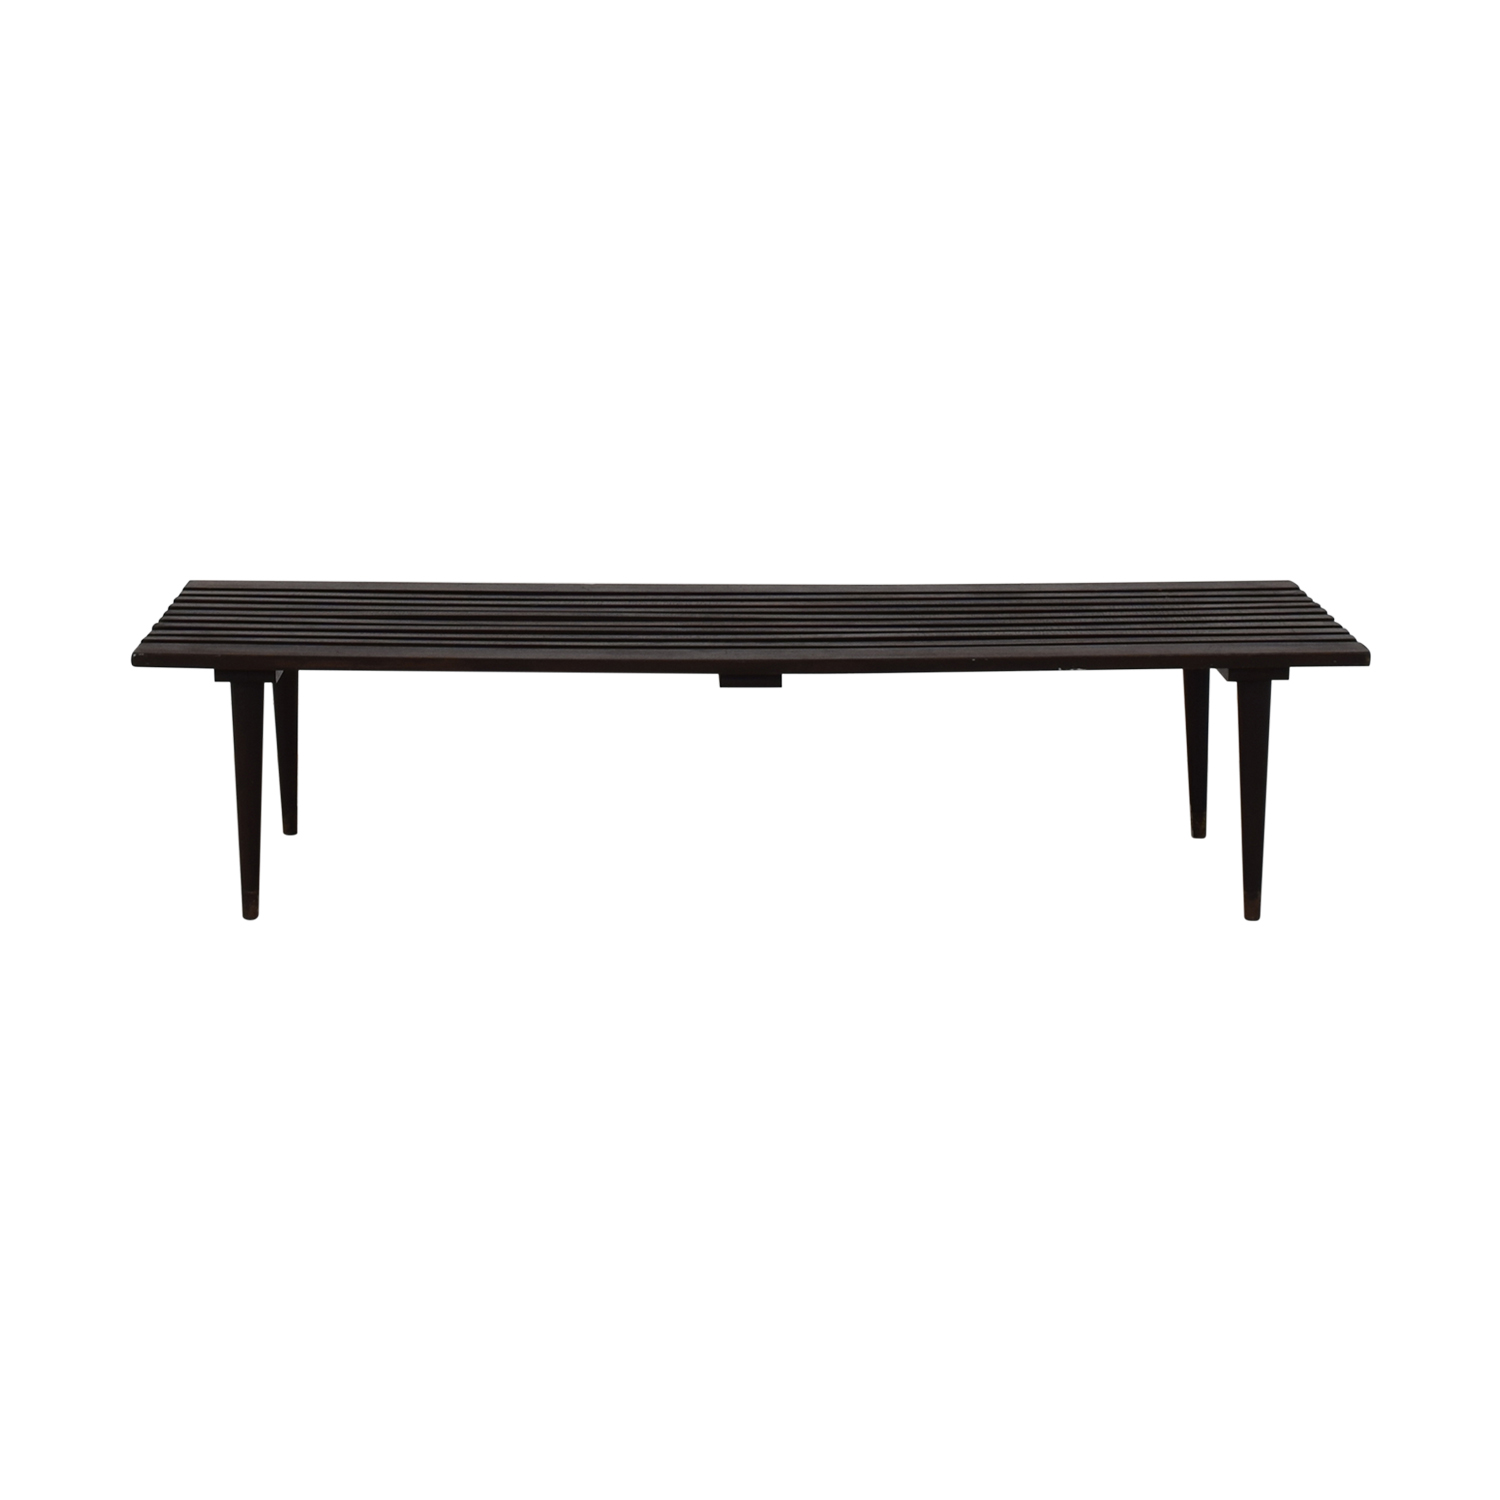 BoConcept Midcentury Black Slat Bench Herman Miller-Style with BoConcept Cushion price